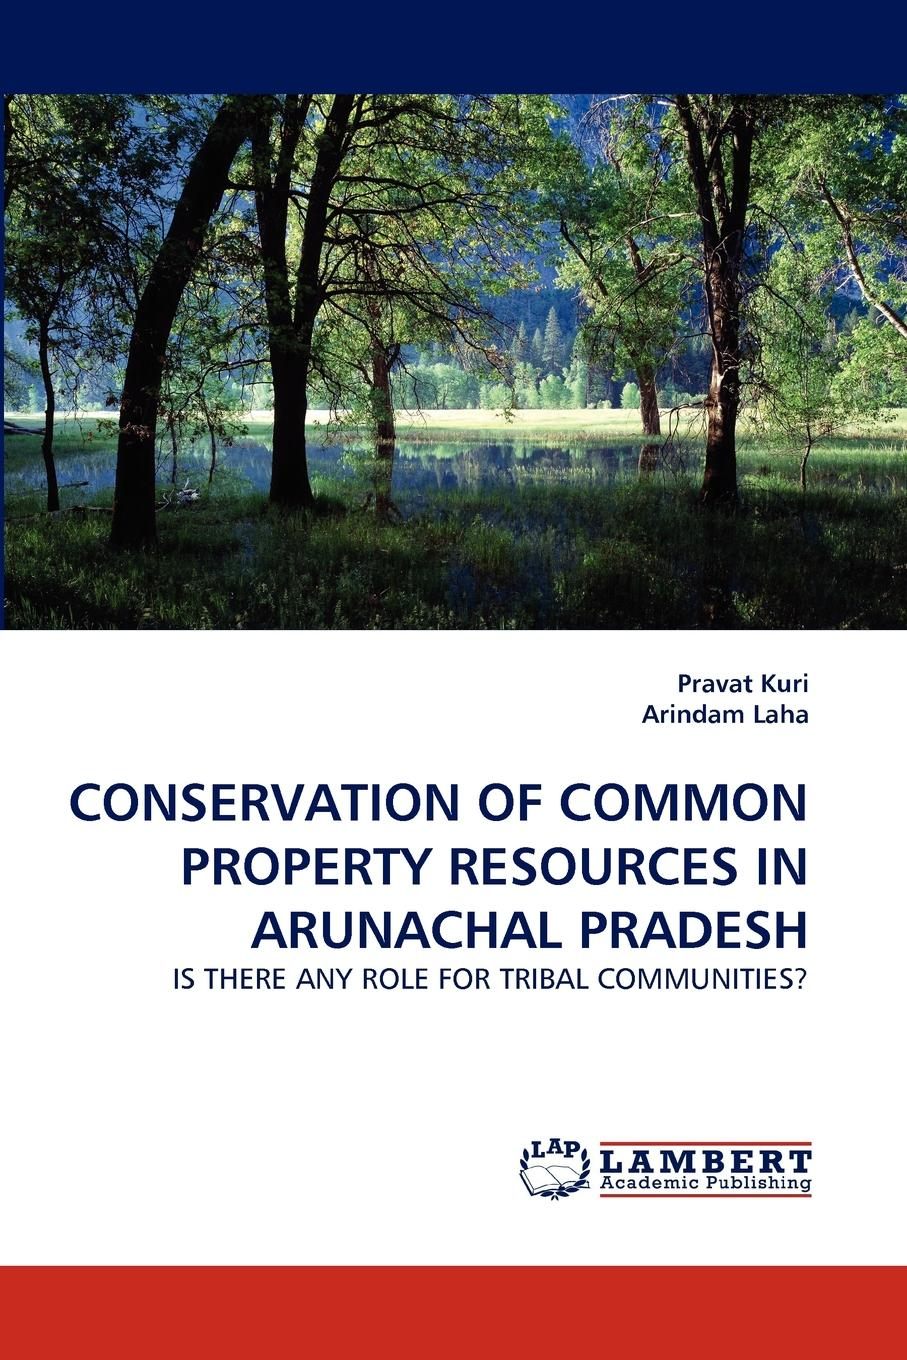 где купить Pravat Kuri, Arindam Laha CONSERVATION OF COMMON PROPERTY RESOURCES IN ARUNACHAL PRADESH недорого с доставкой